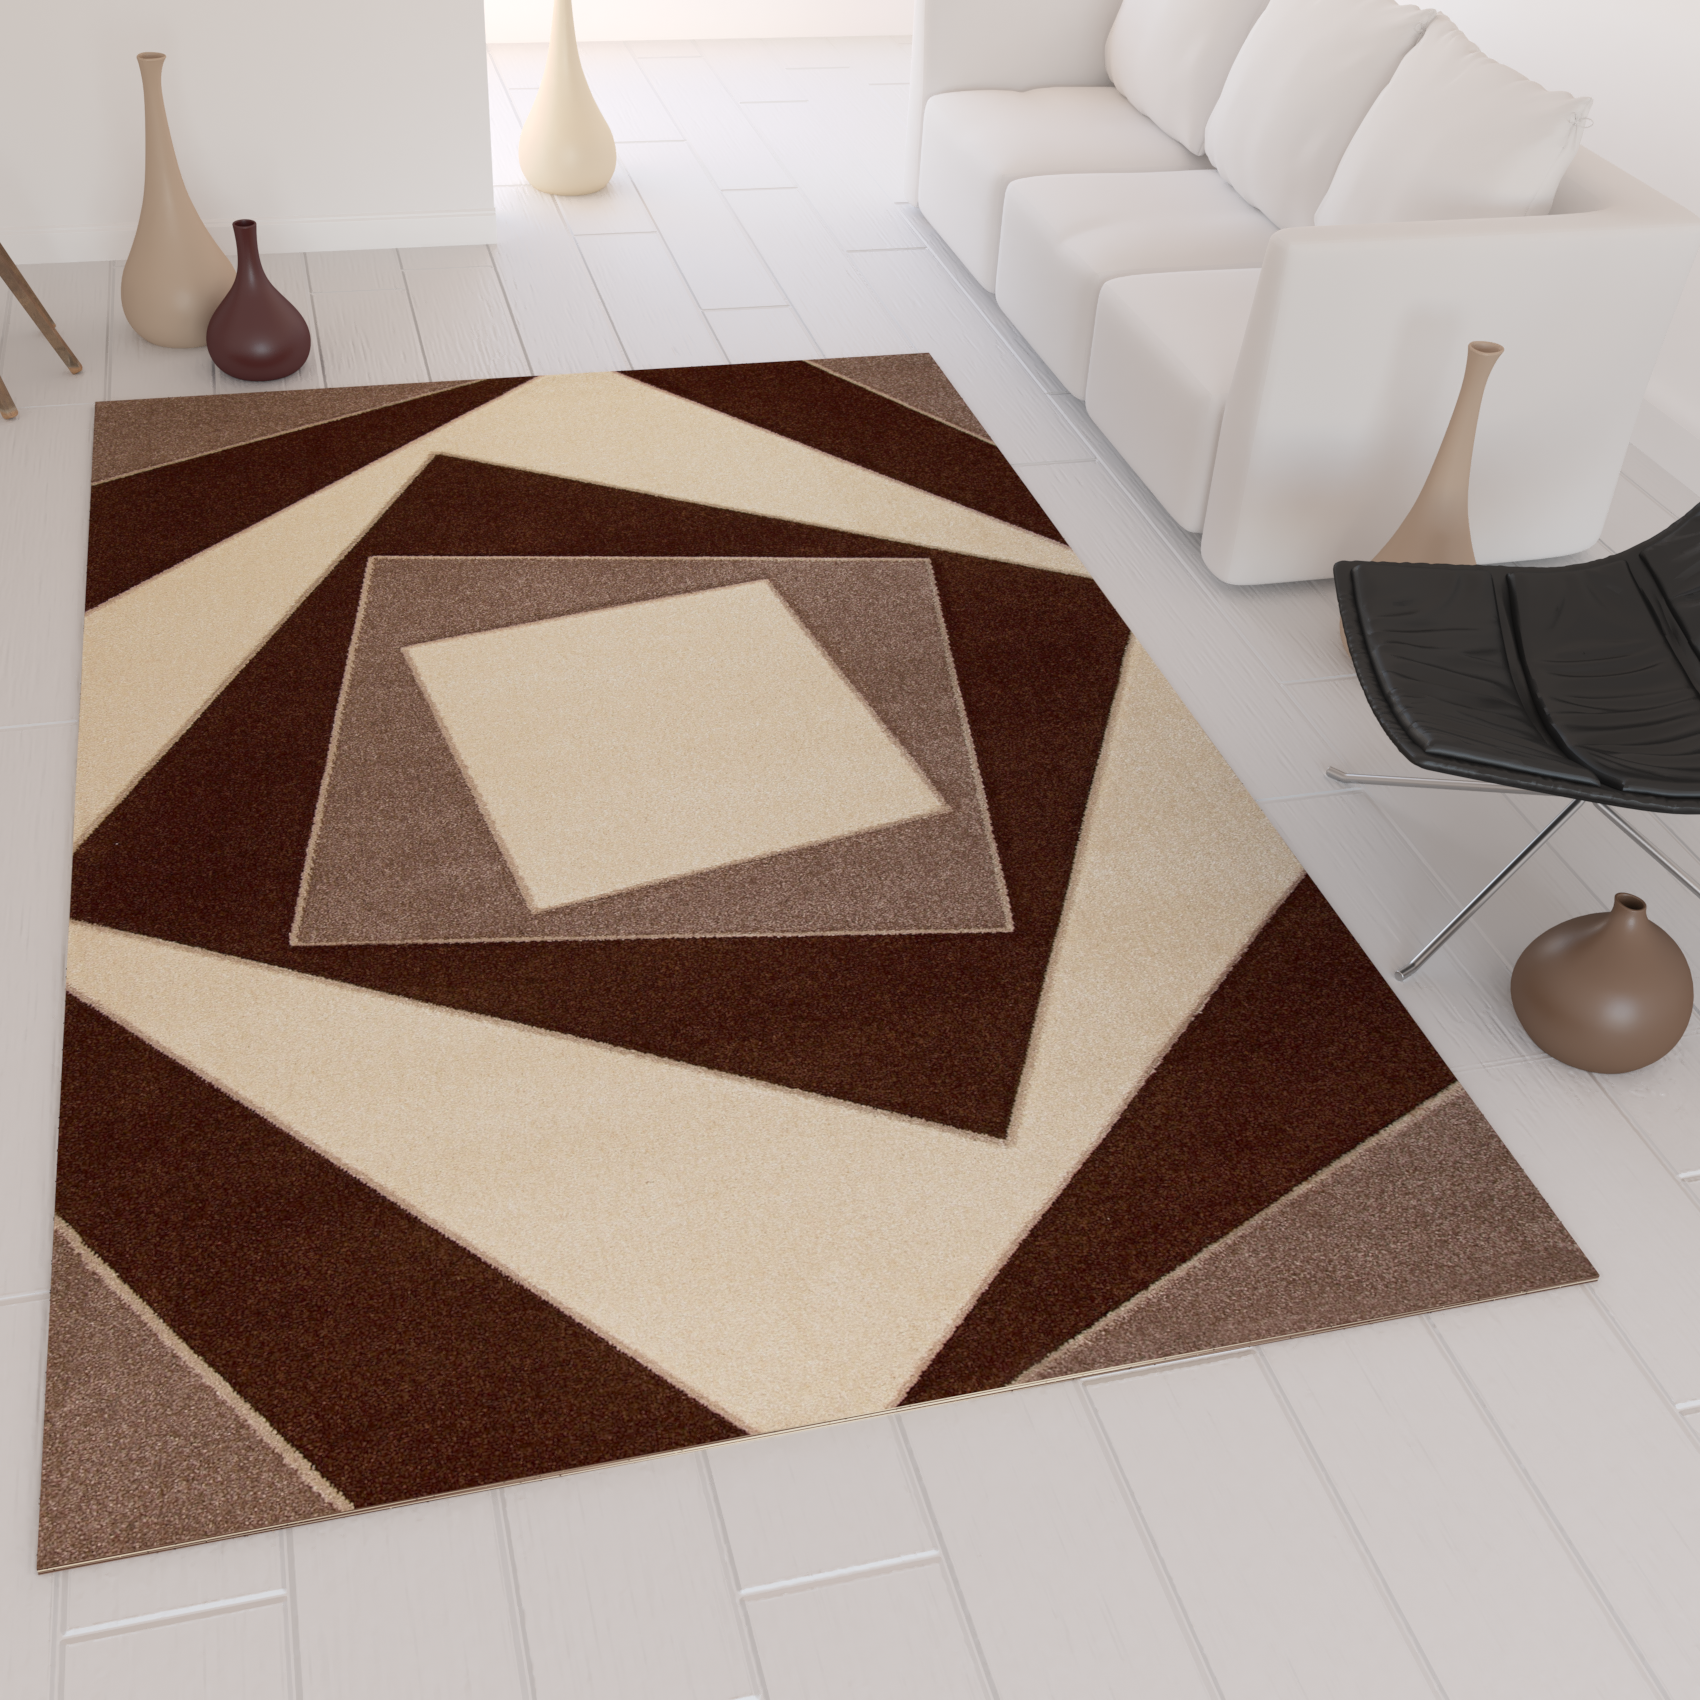 Modern rug check pattern modern design hand cut contours for New check designs